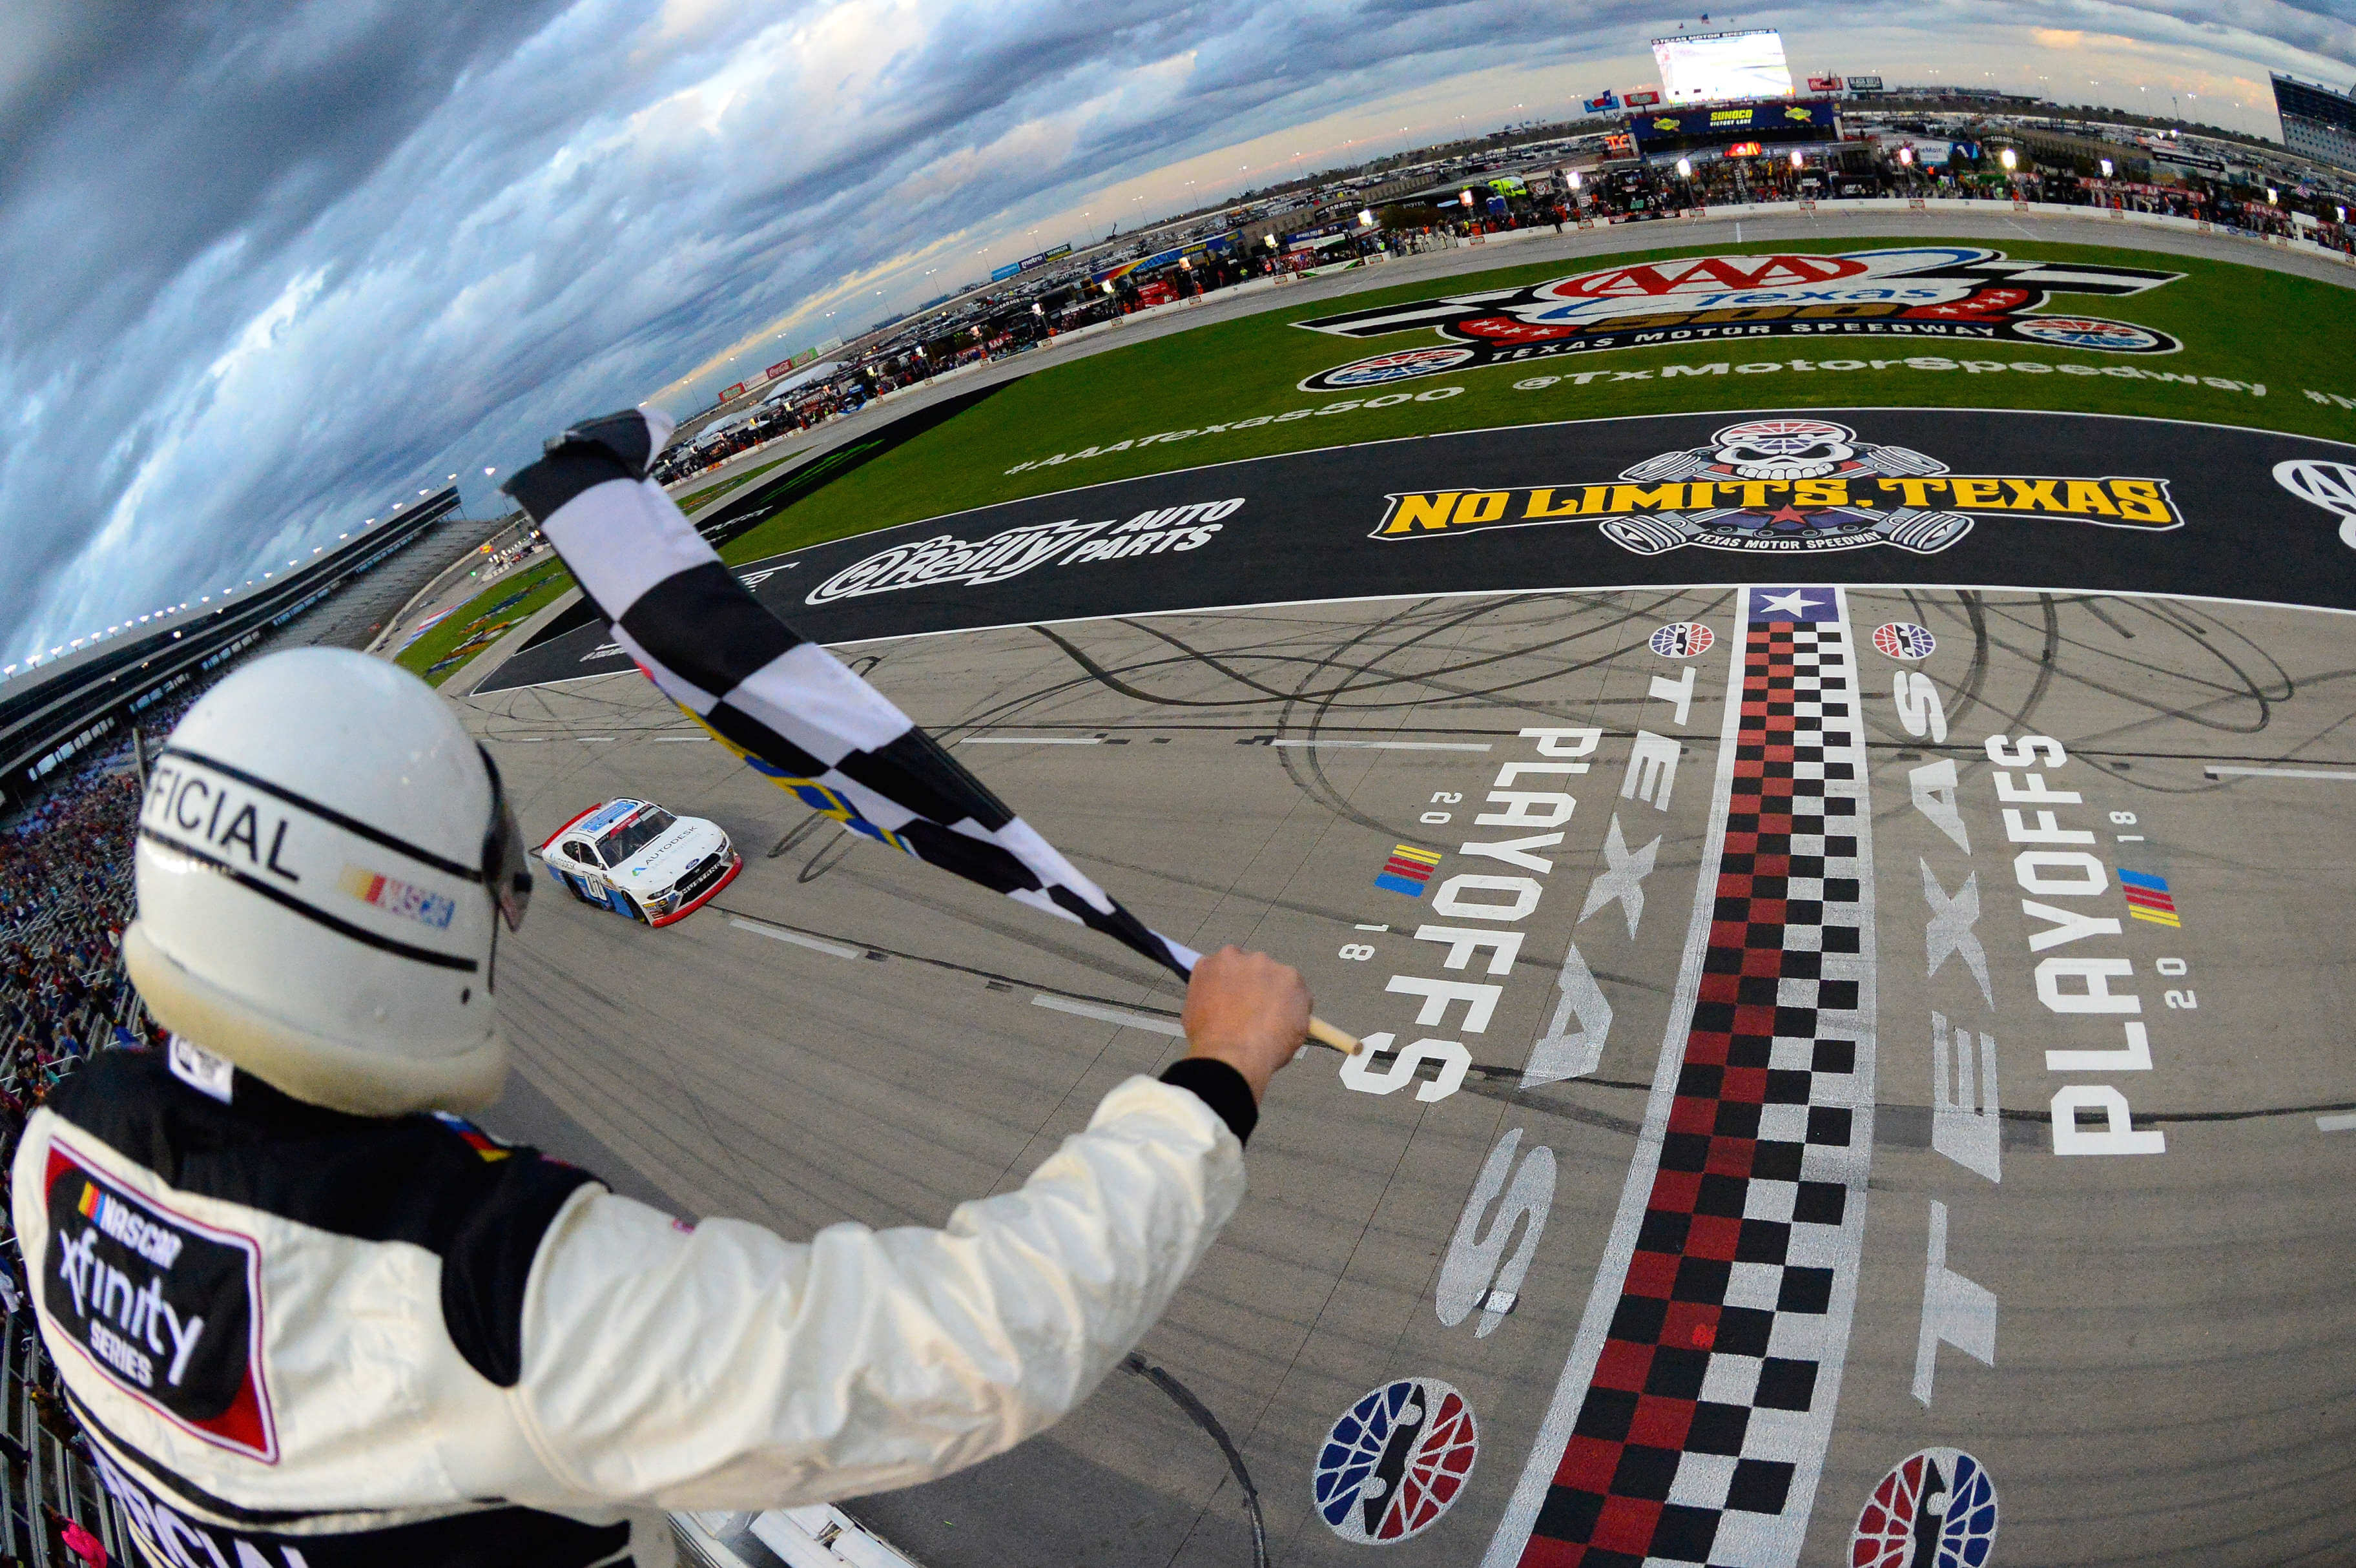 Cole Custer wins at Texas Motor Speedway